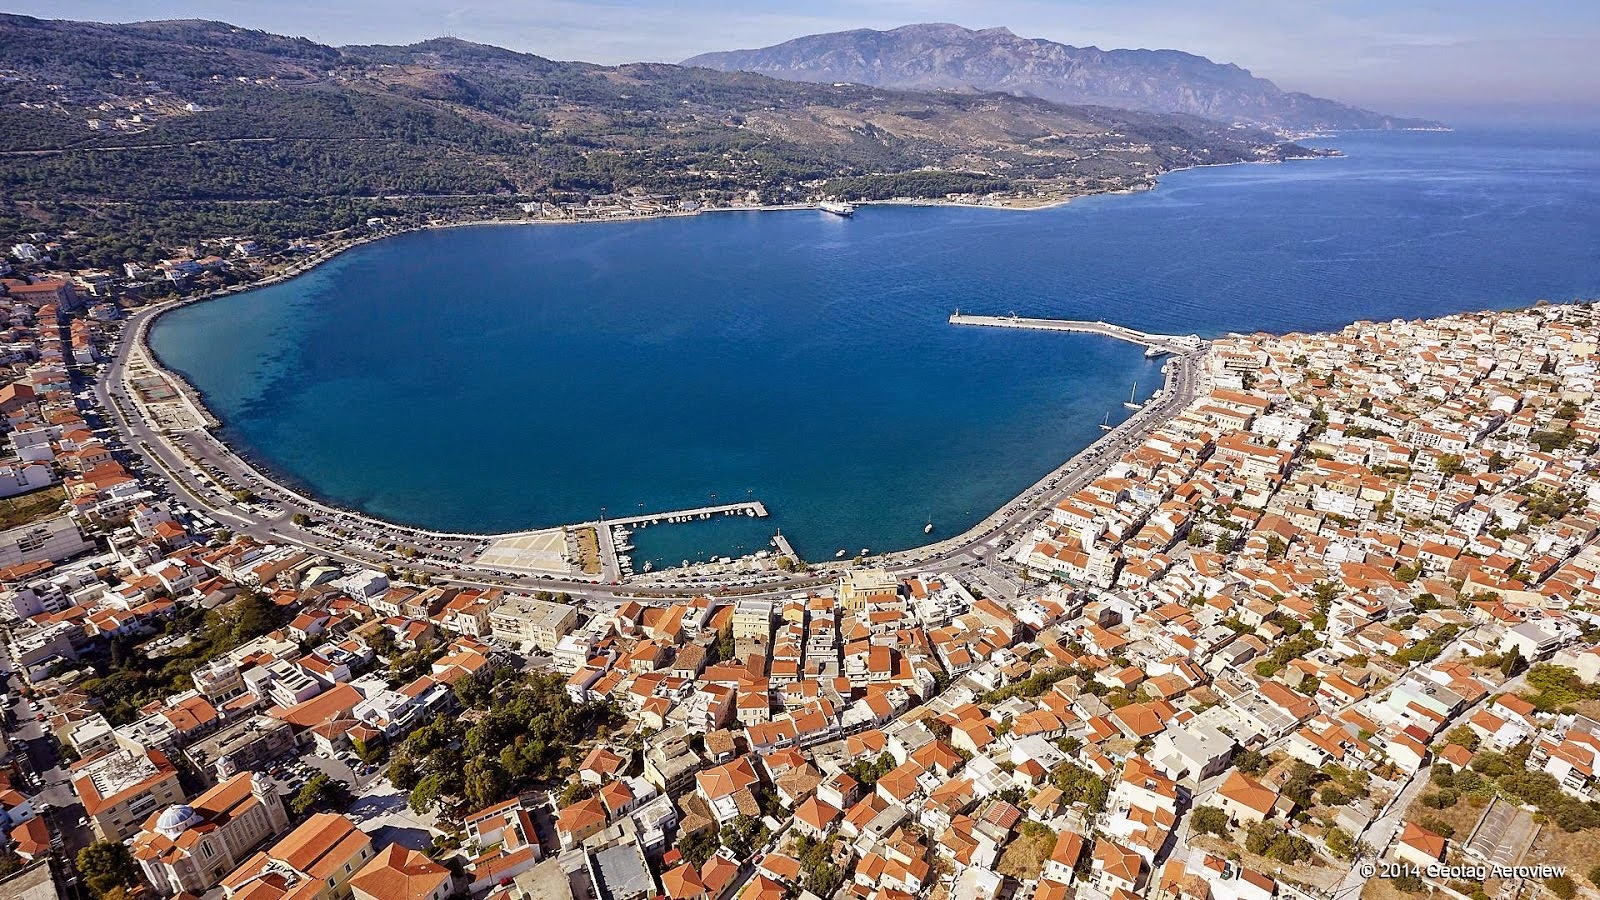 Town of Samos